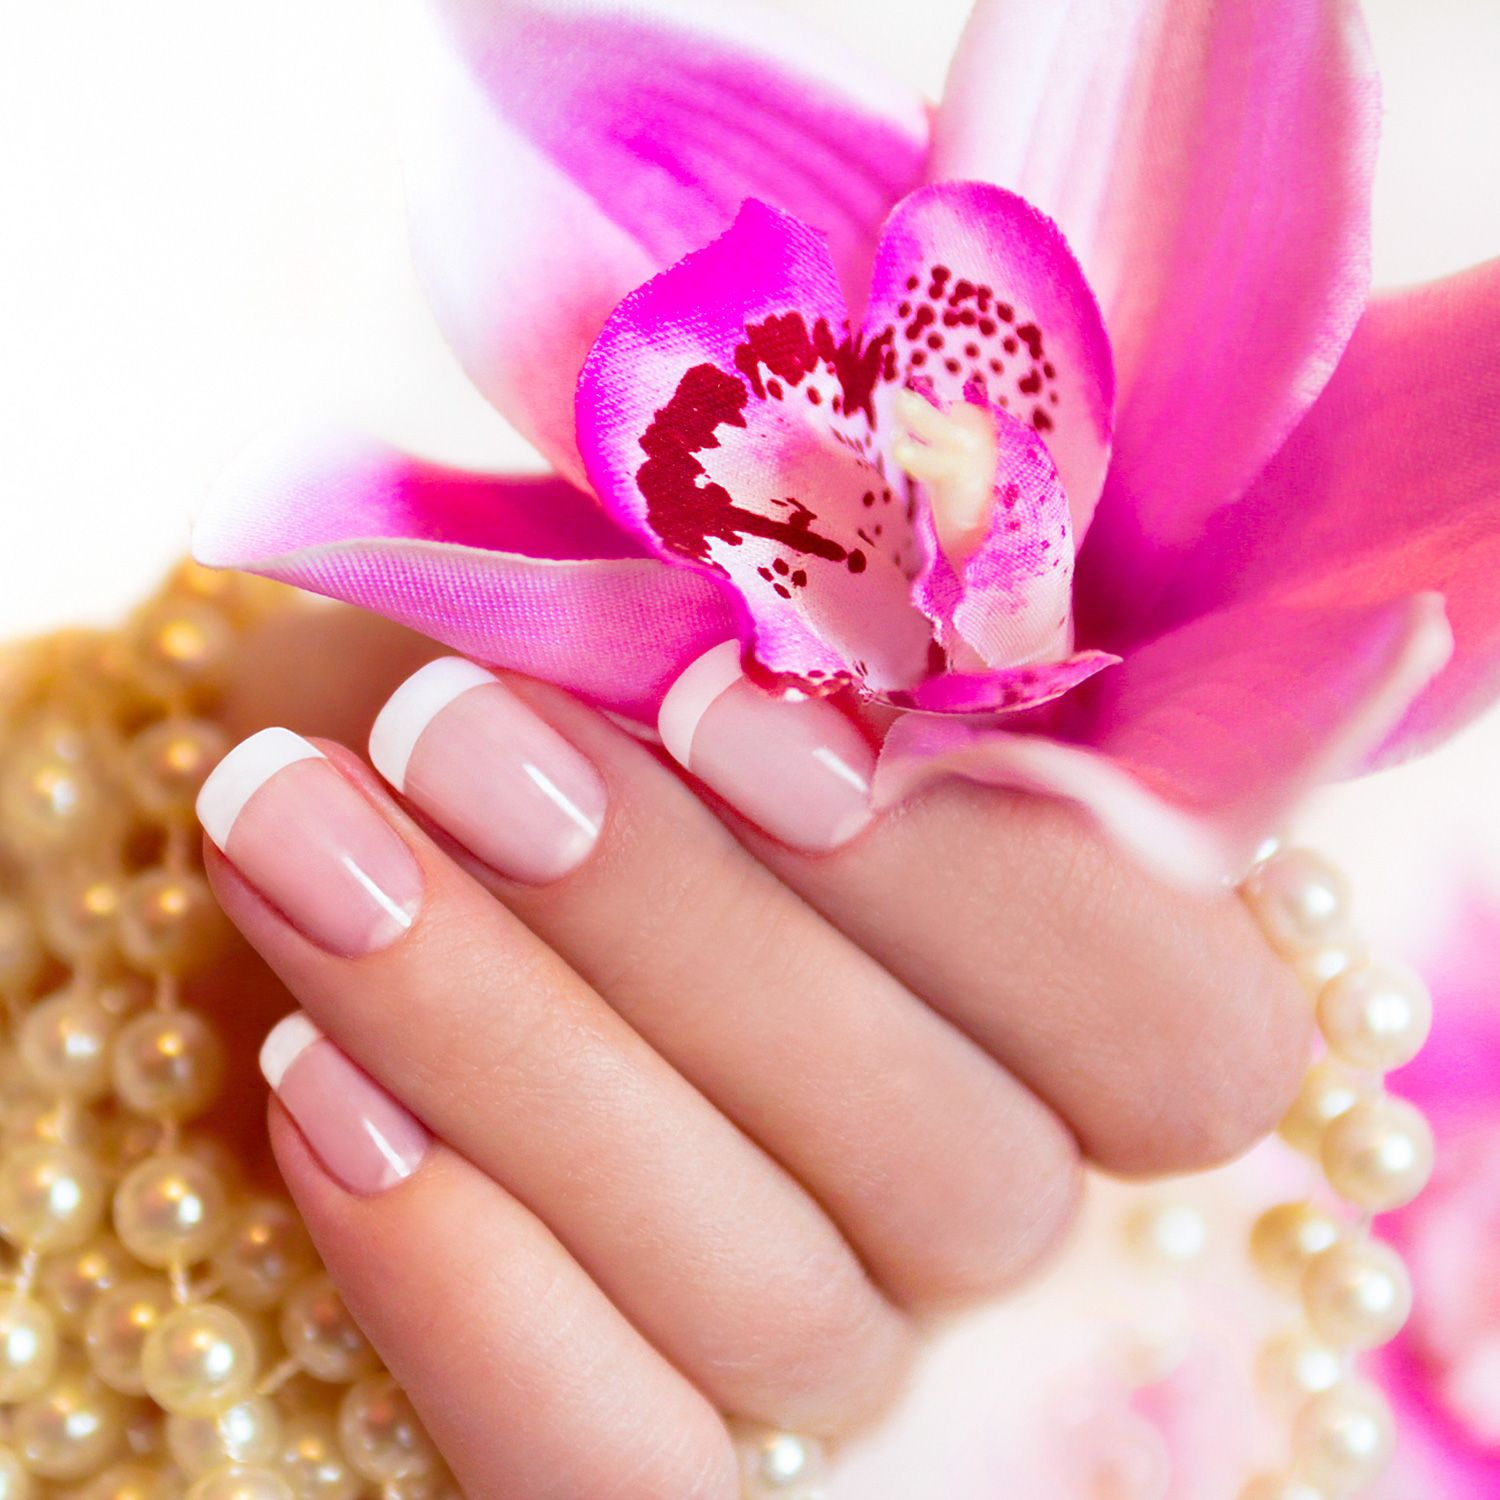 Trim Shape Clean Cuticle Hand Massage And Paint Shellac